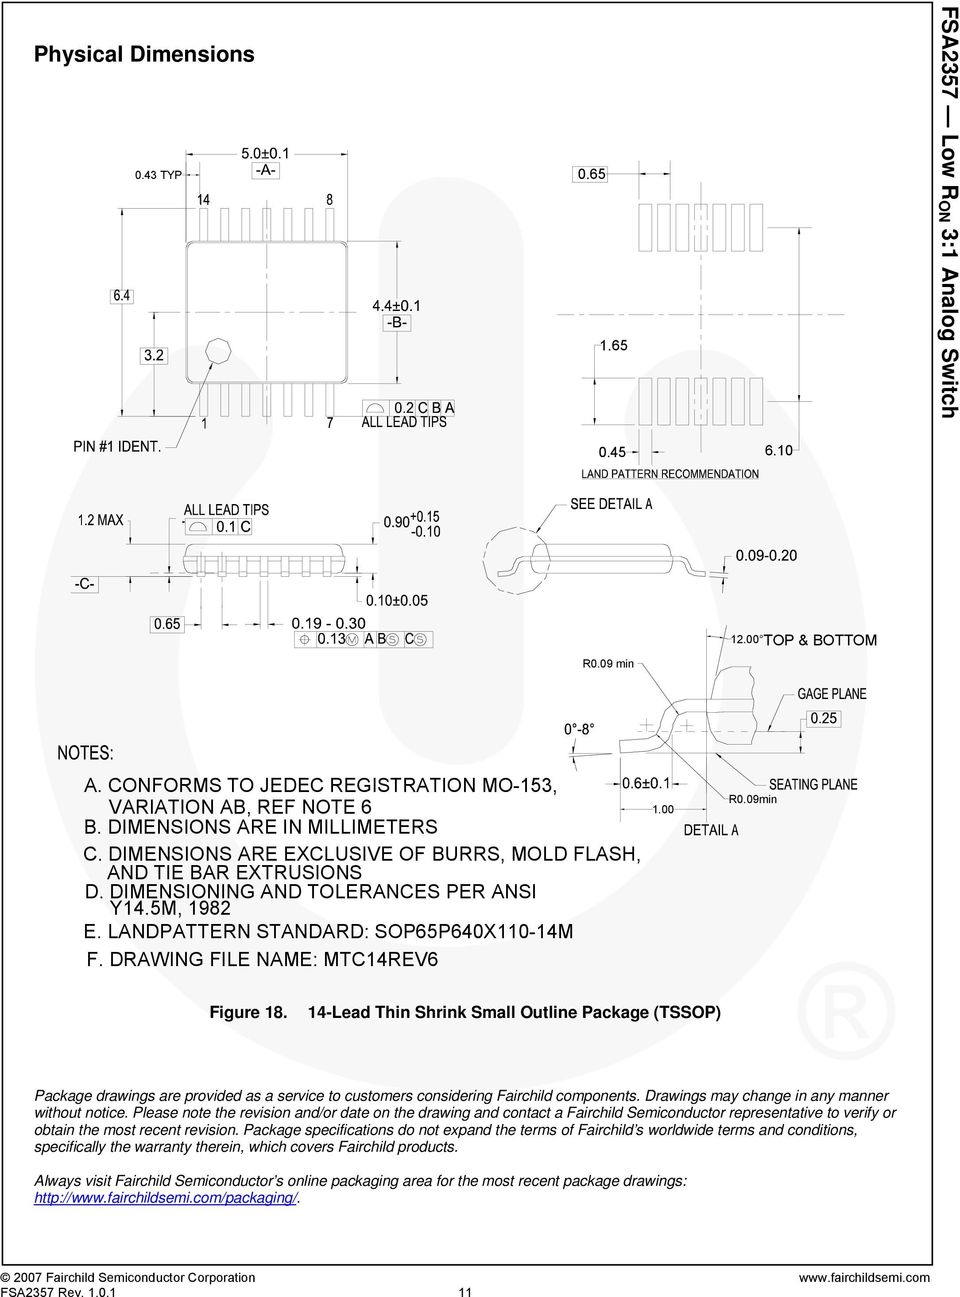 00 R0.09min Figure 18. 14-Lead Thin Shrink Small Outline Package (TSSOP) Package drawings are provided as a service to customers considering Fairchild components.